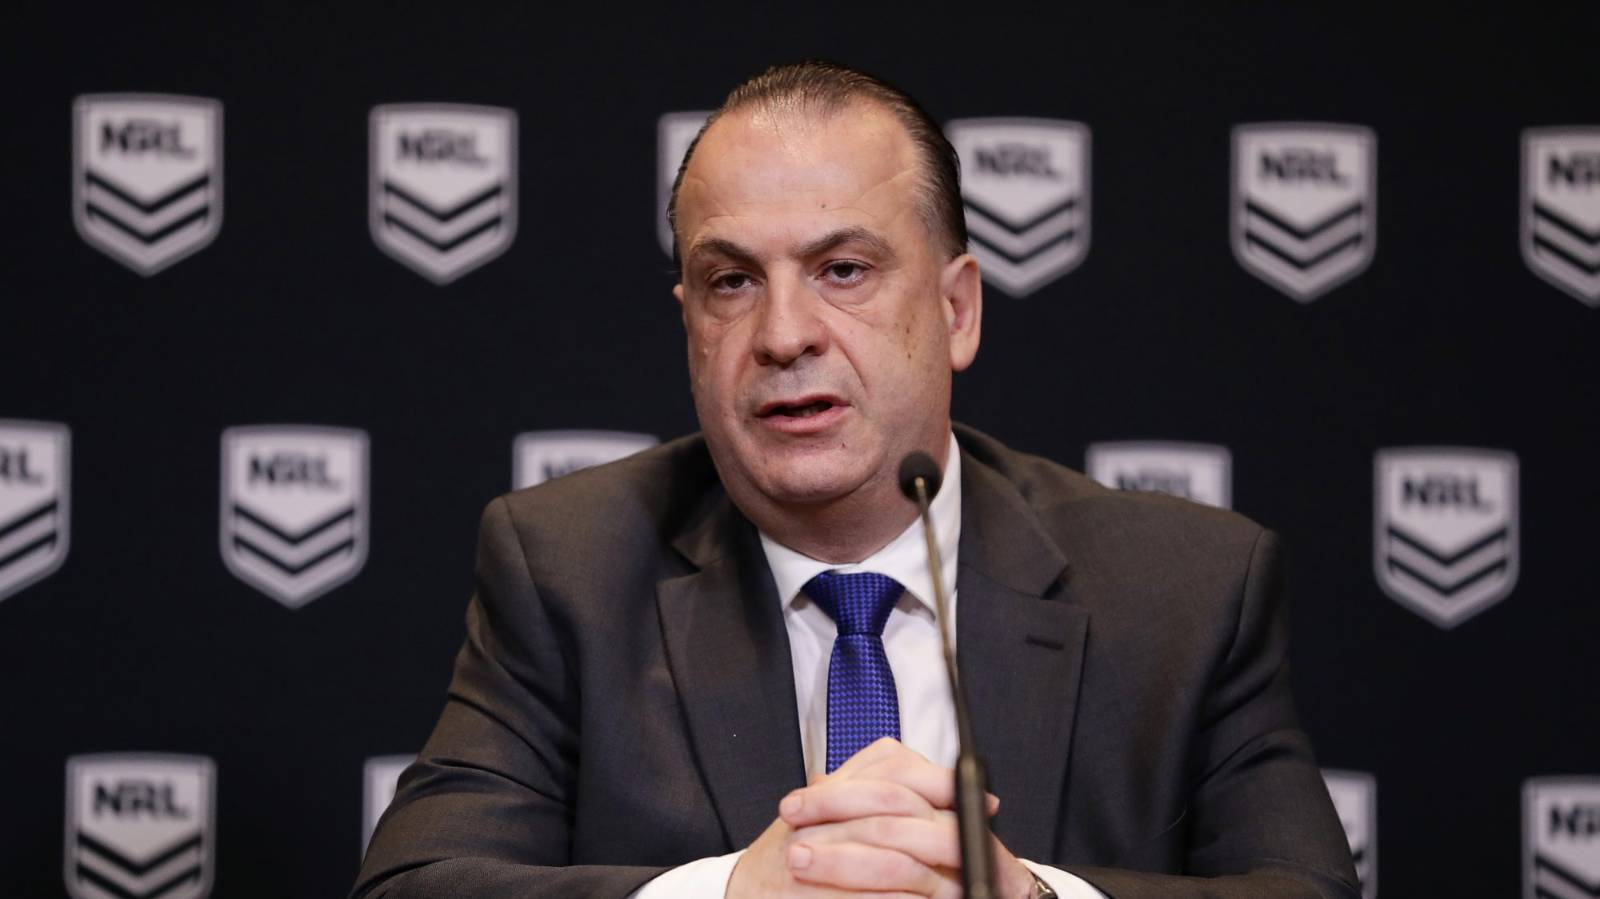 NRL to consider limit on contact training after concussion spate